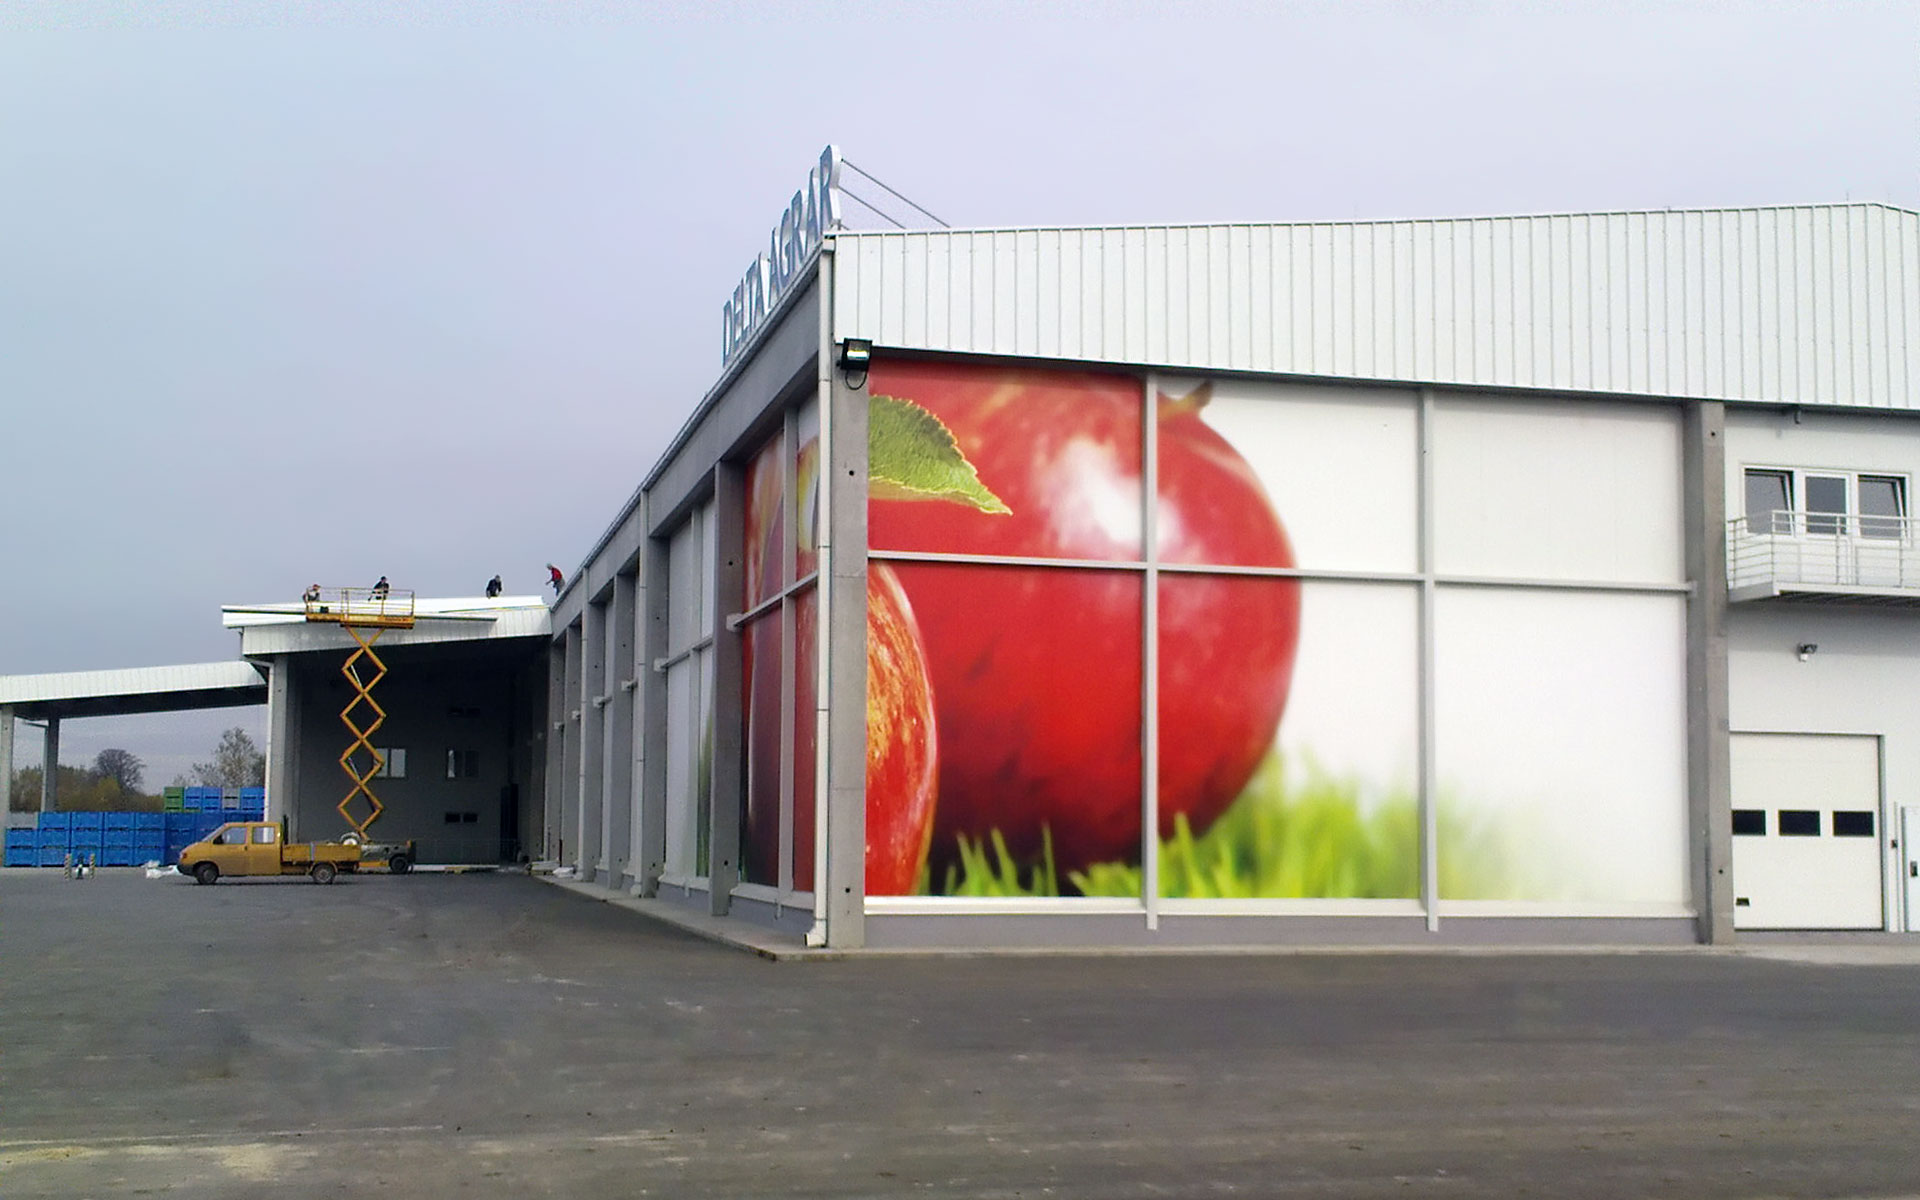 Cold storage for apples in u201cULOu201d technology. ?elarevo SERBIA & Cold storage for apples u2013 MBBMING